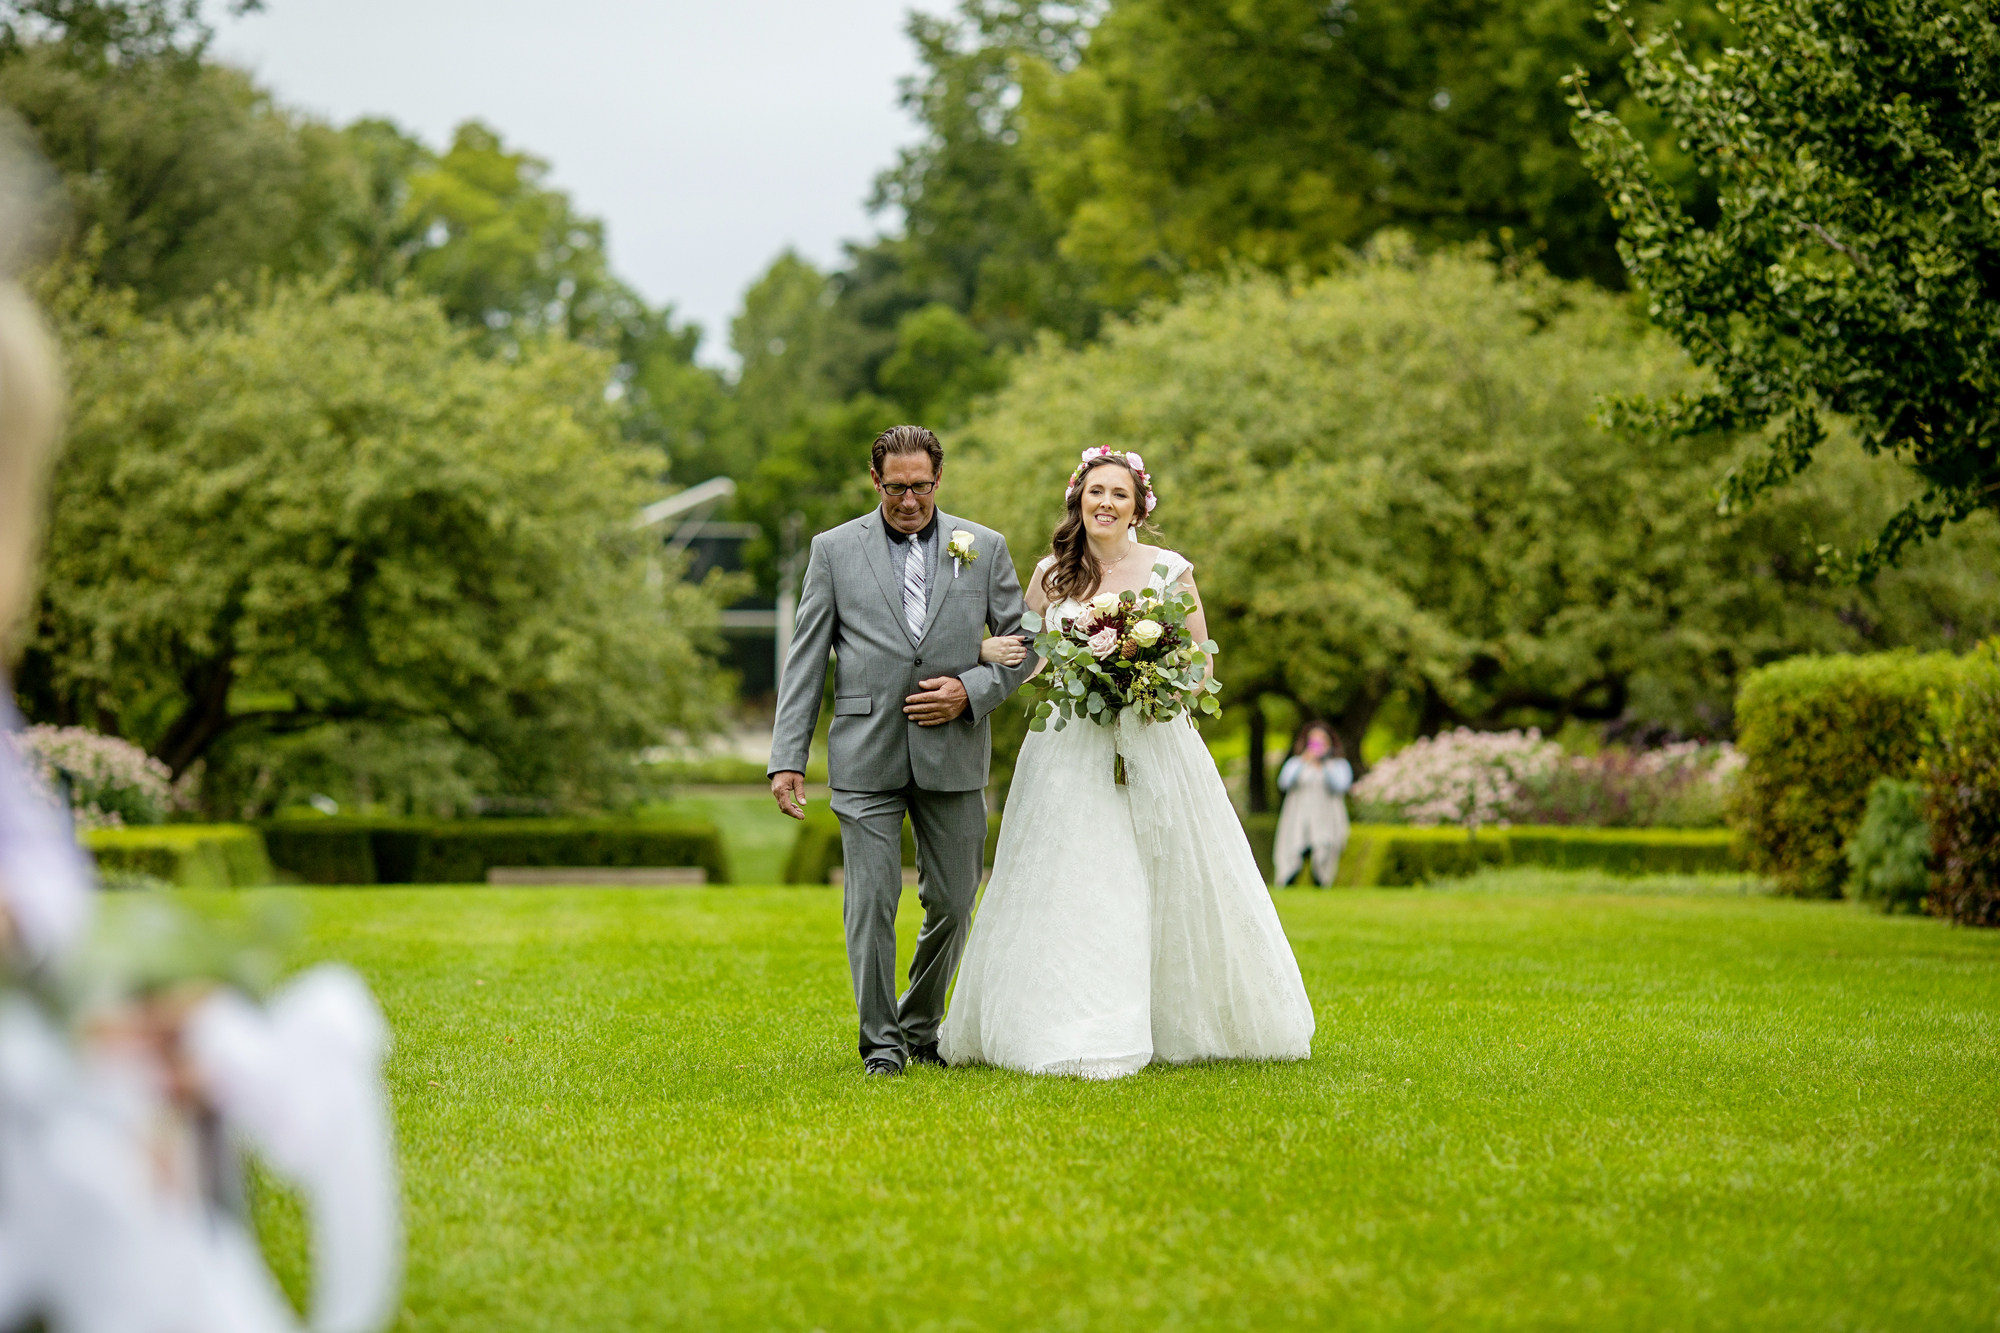 Seriously_Sabrina_Photography_Lisle_Illinois_Morton_Arboretum_Wedding_Day_Gowen63.jpg